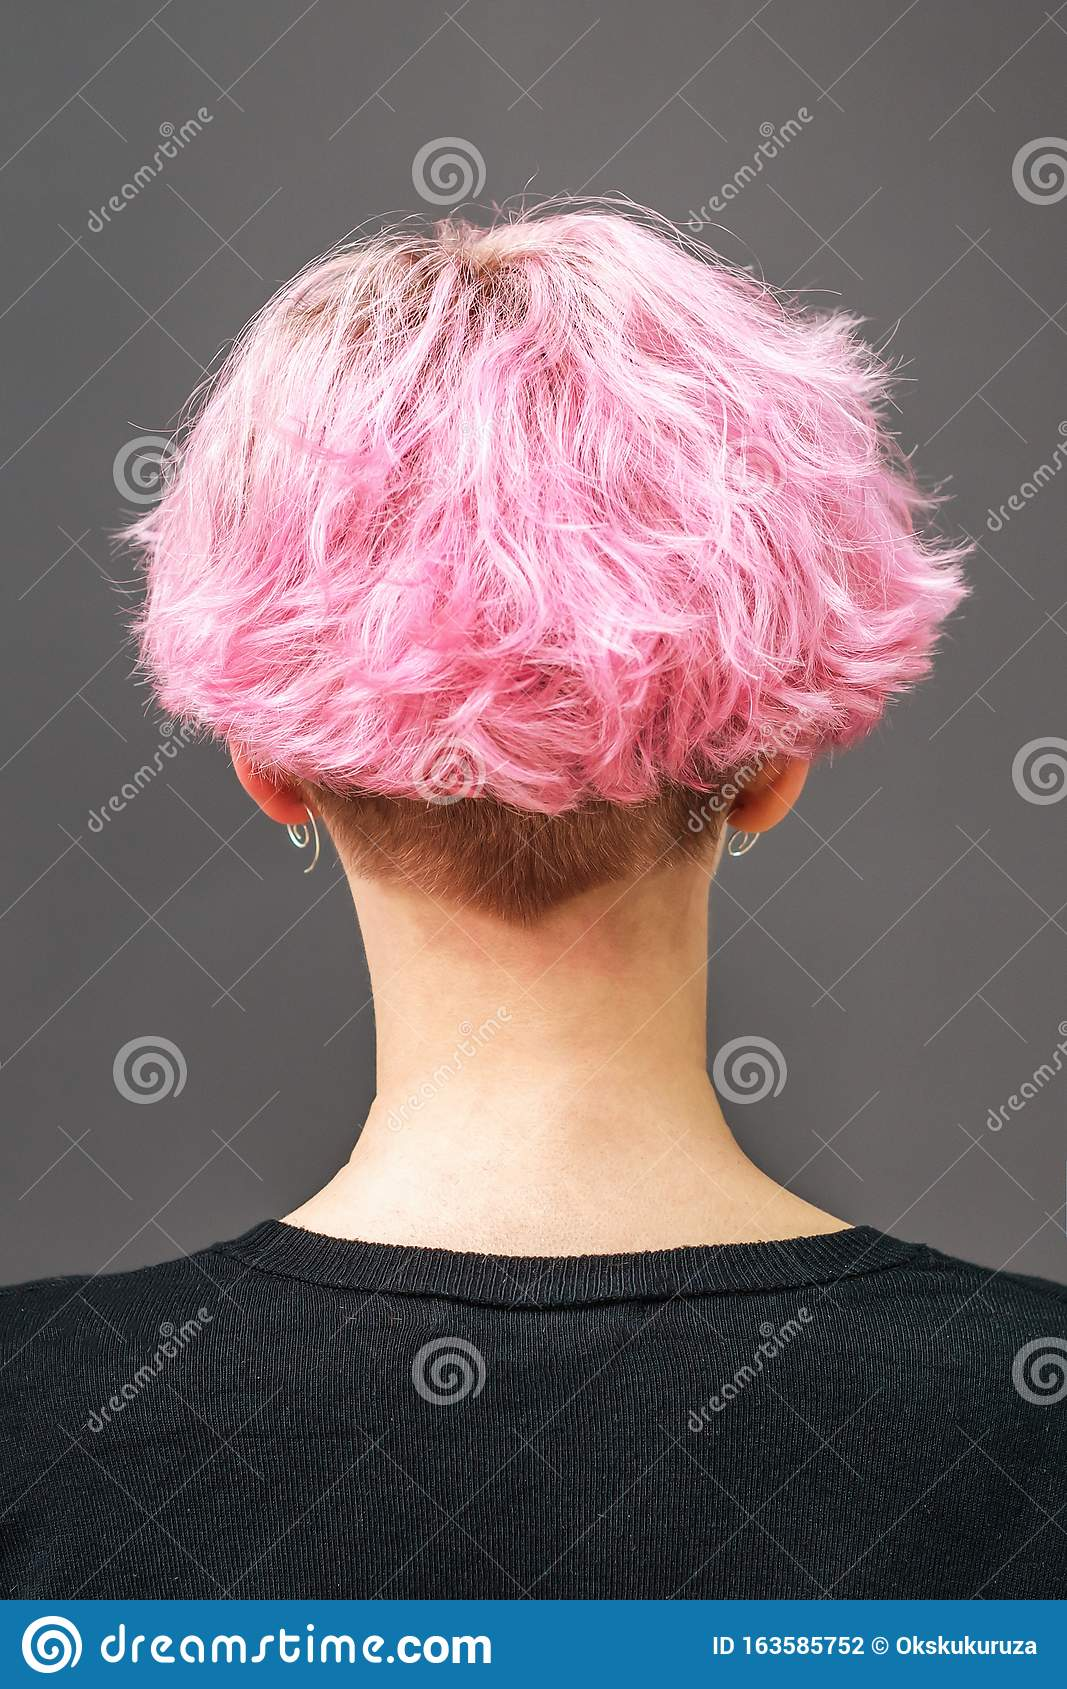 Woman With Pink Short Hairstyle Stock Photo   Image of cover ...